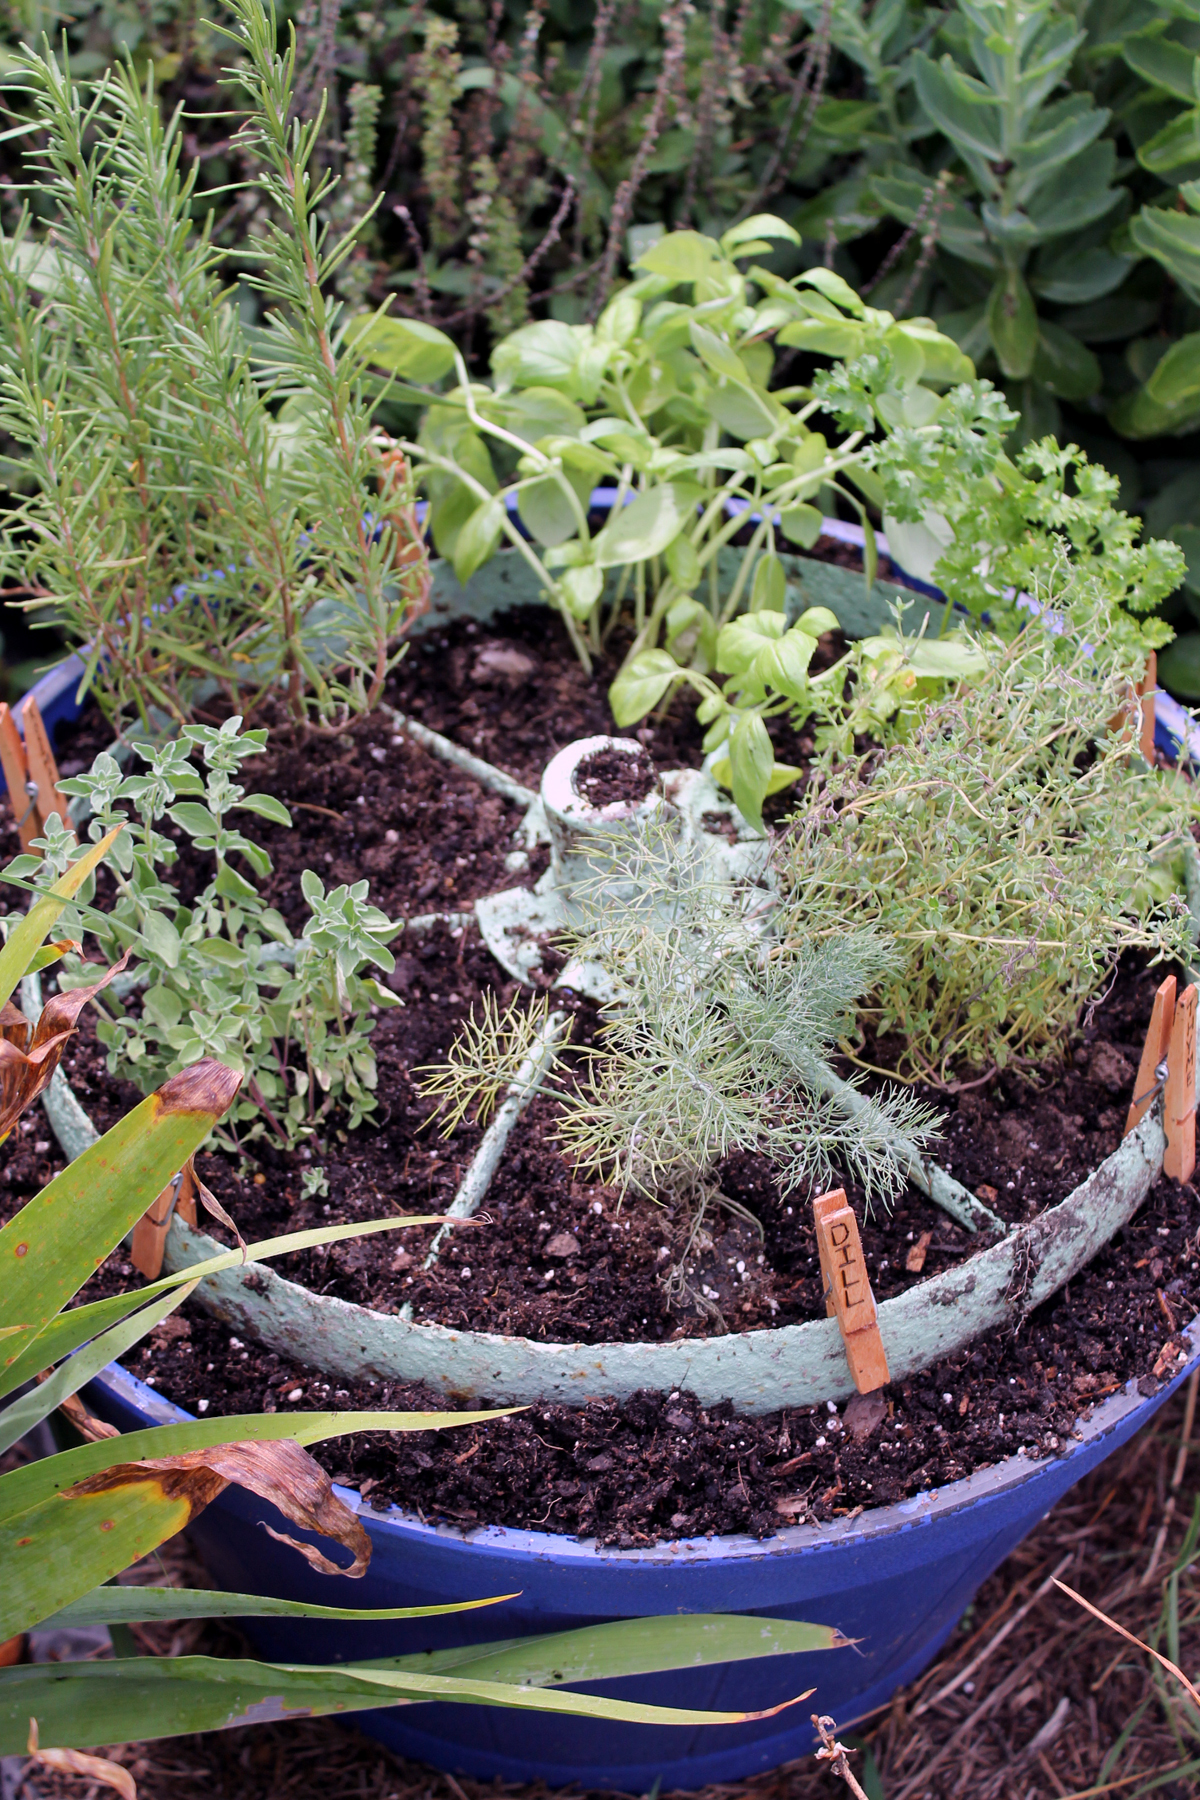 Distinguished Apartment Herb Garden Ideas An Plusinstructions Herb Garden Rustic Wheel Country Cottage Herb Garden Ideas Herb Garden Design Make A Rustic Herb Garden garden Herb Garden Idea